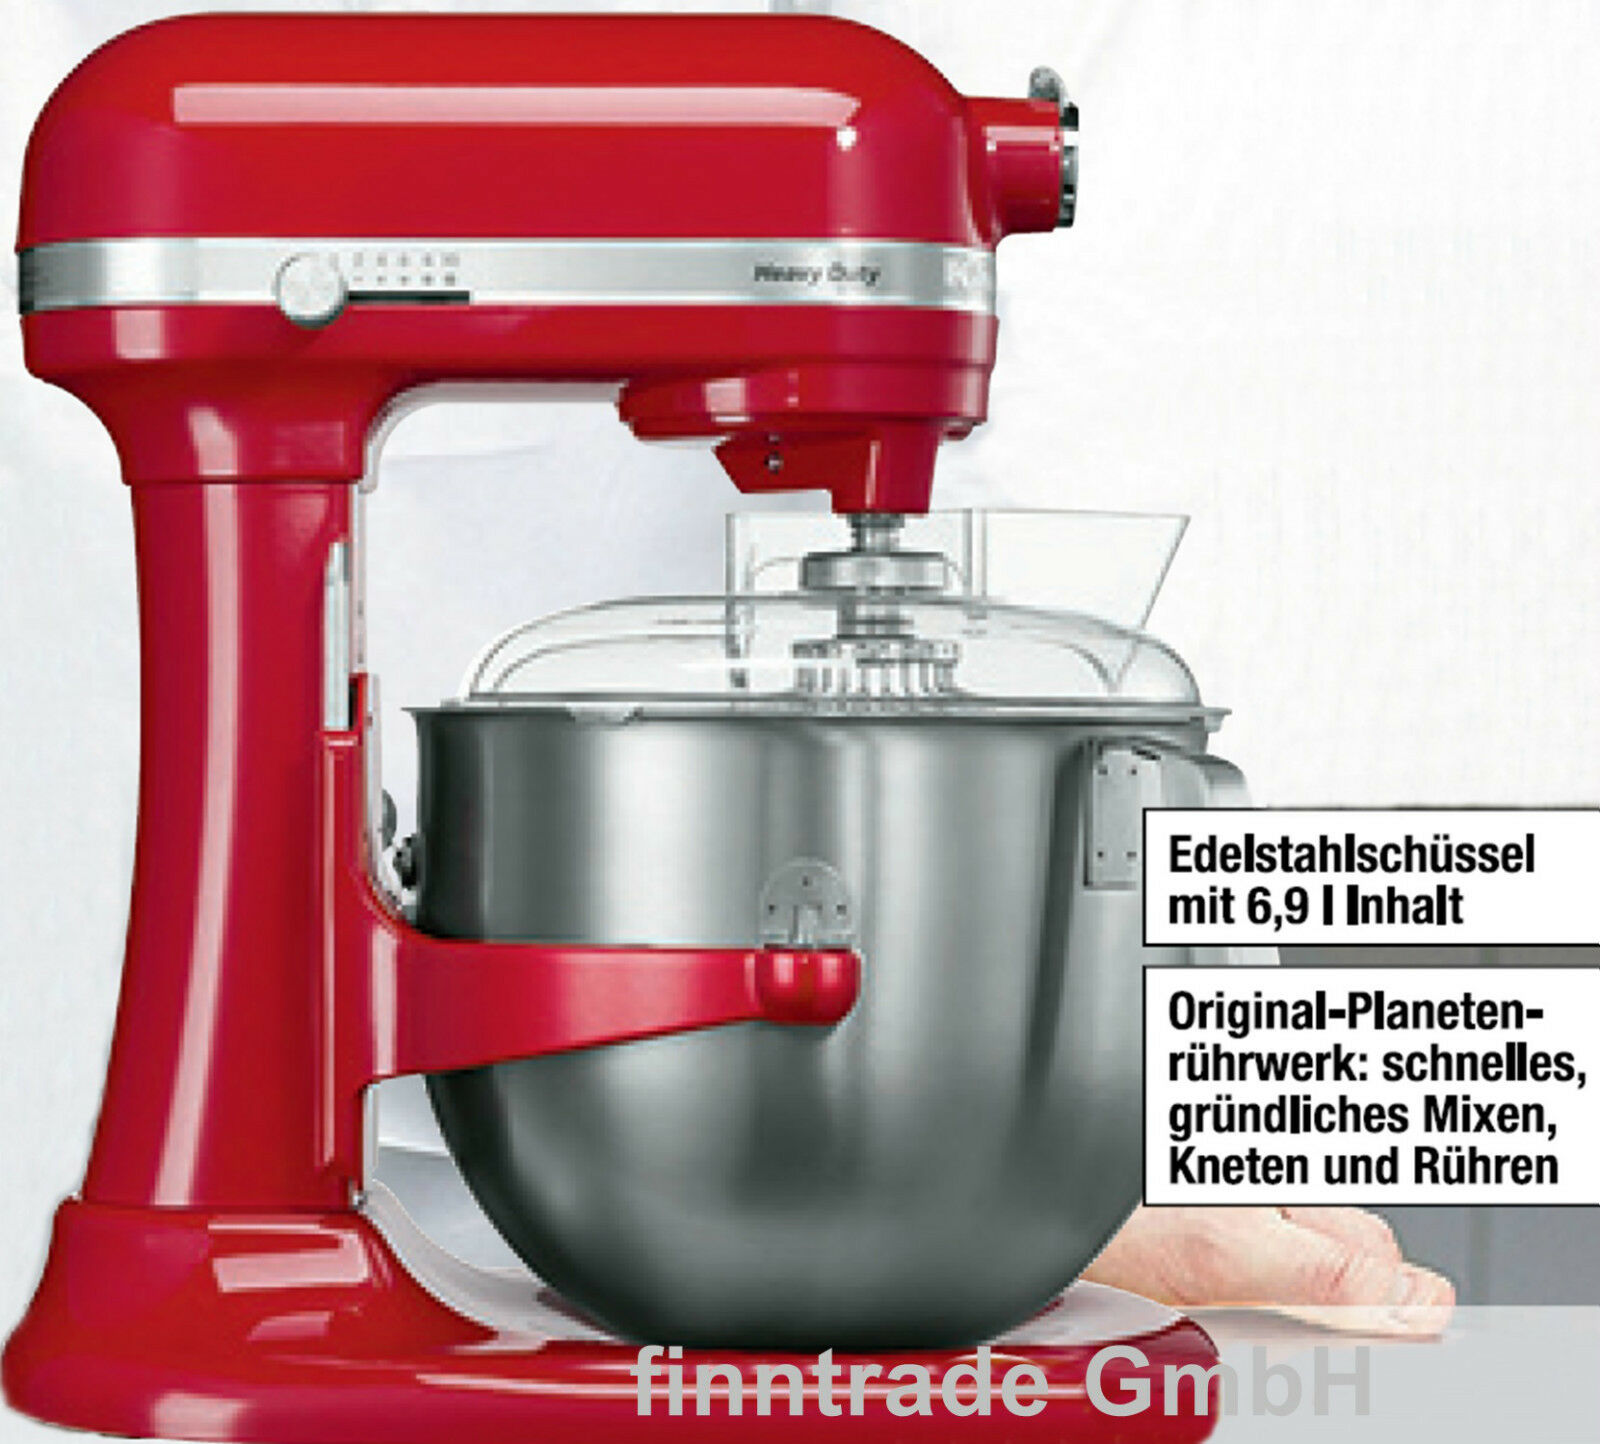 kitchenaid heavy duty k chenmaschine 6 9 l empire rot 5ksm7591x kitchen aid ebay. Black Bedroom Furniture Sets. Home Design Ideas